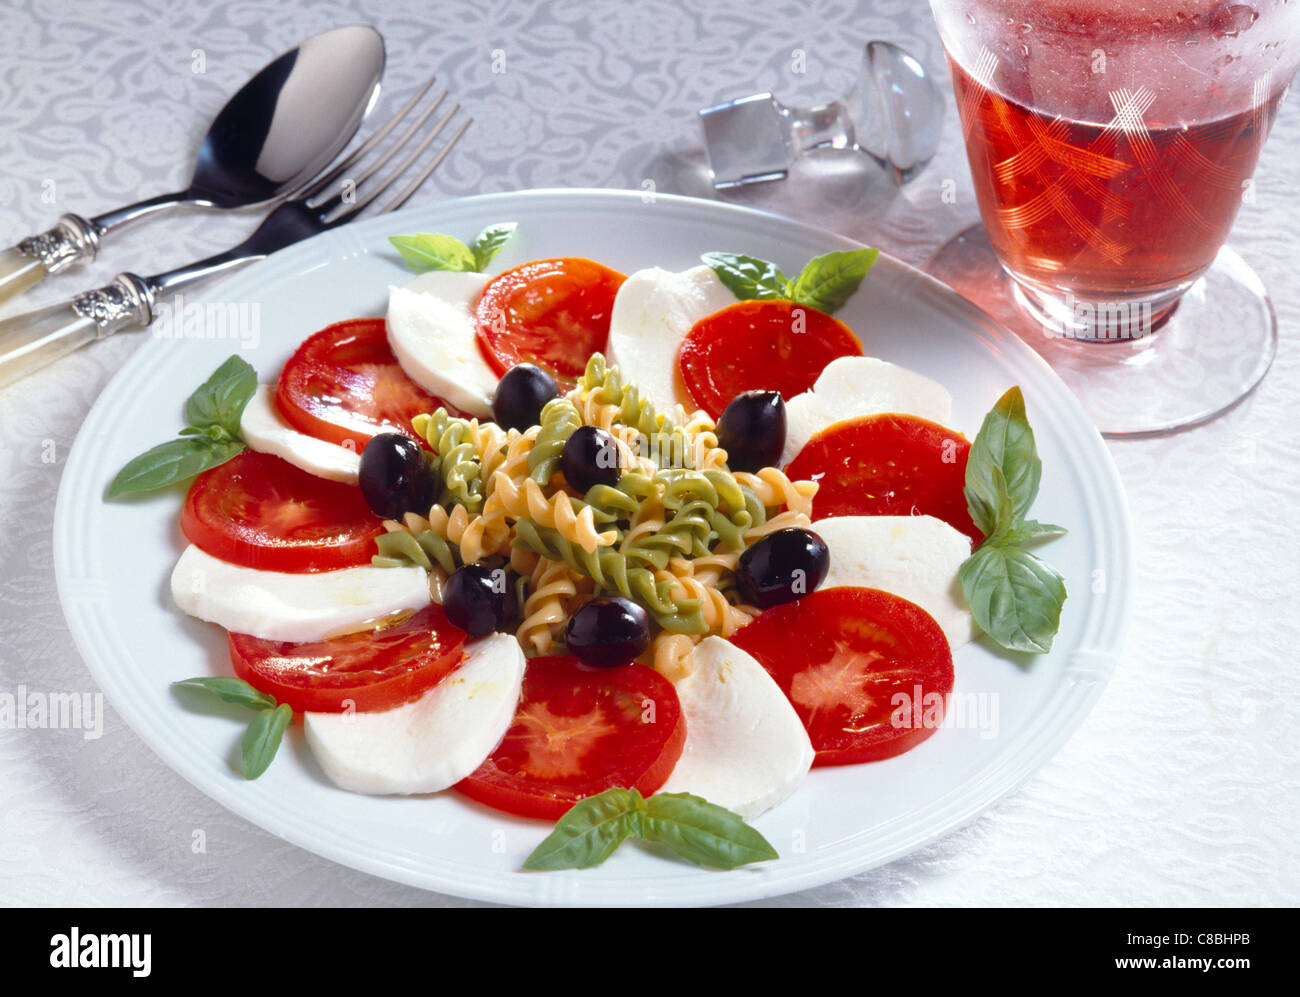 Salade de tomate et mozzarella Photo Stock